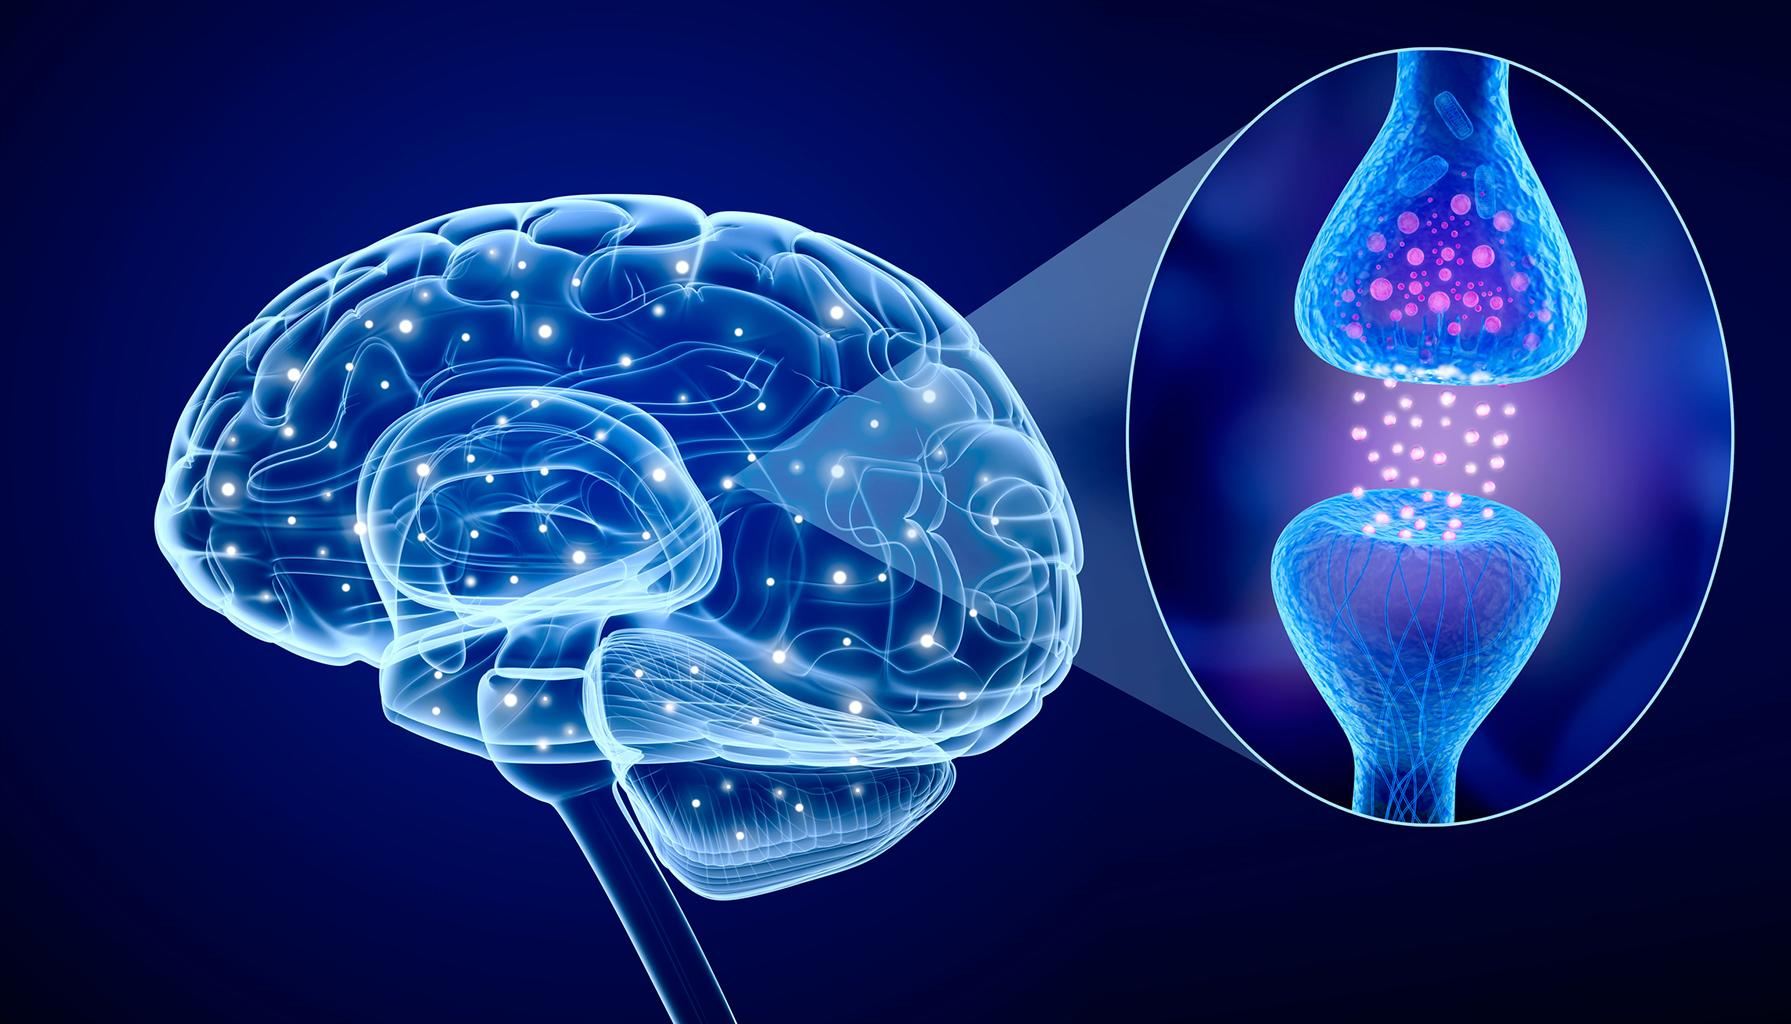 Mindblowing: advances in brain tech spur push for 'neuro-rights'